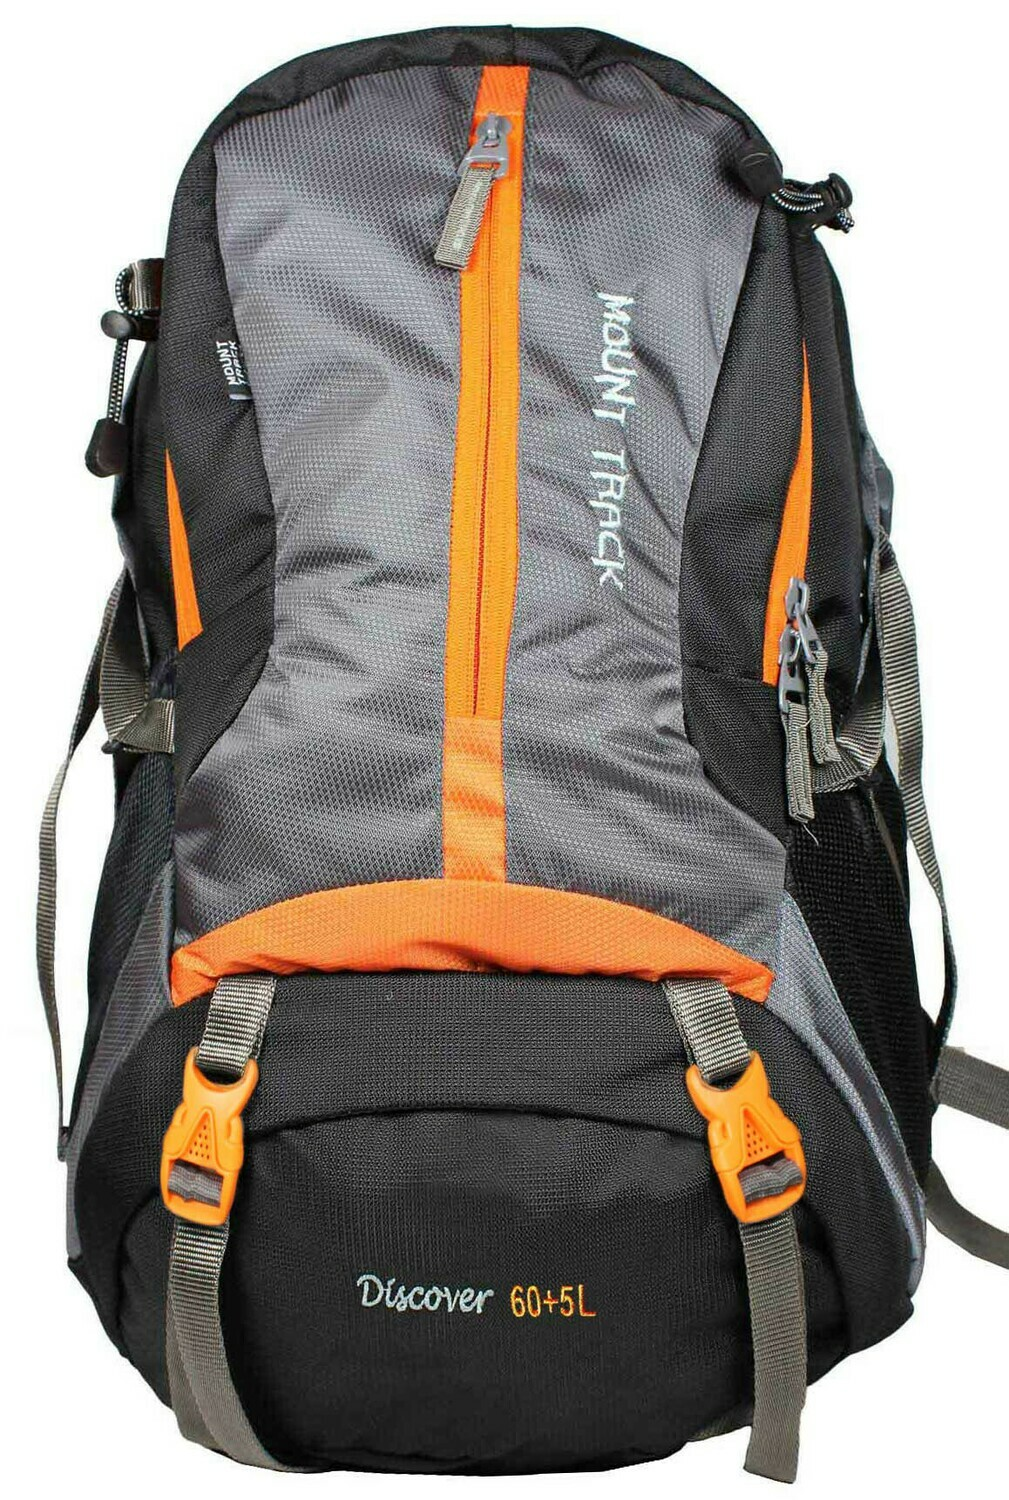 Mount Track Discover 65 Ltrs Rucksack, Hiking Backpack